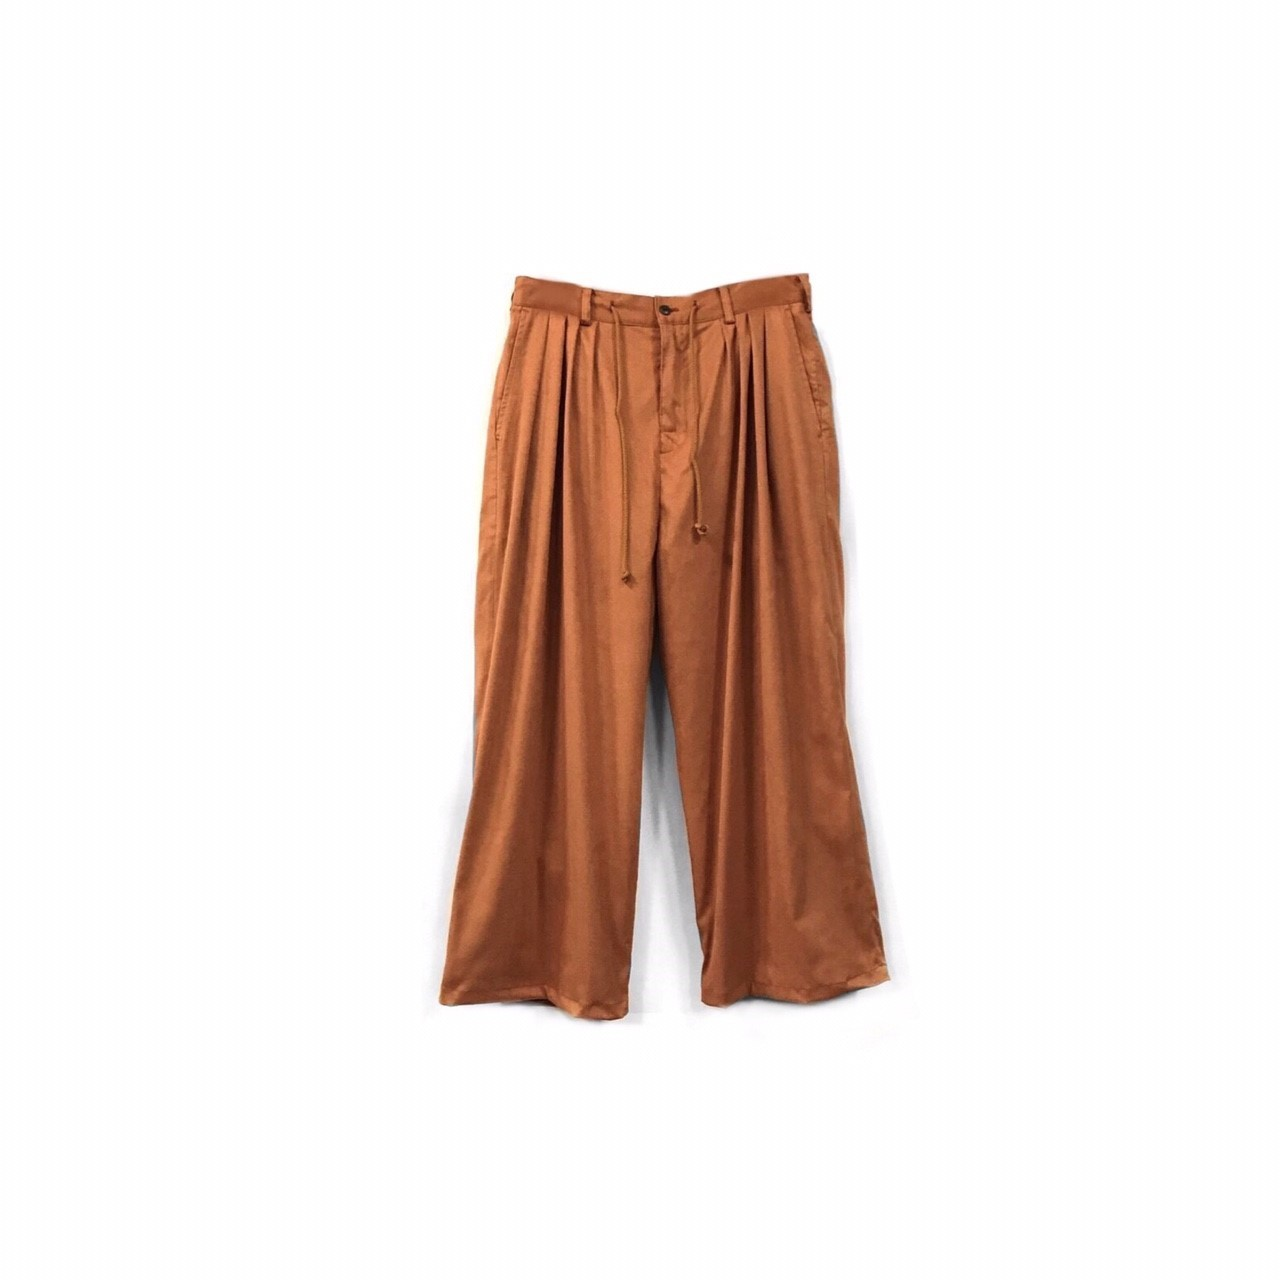 yotsuba - Fake Suede 4tuck Wide Pants / Orange ¥26000+tax